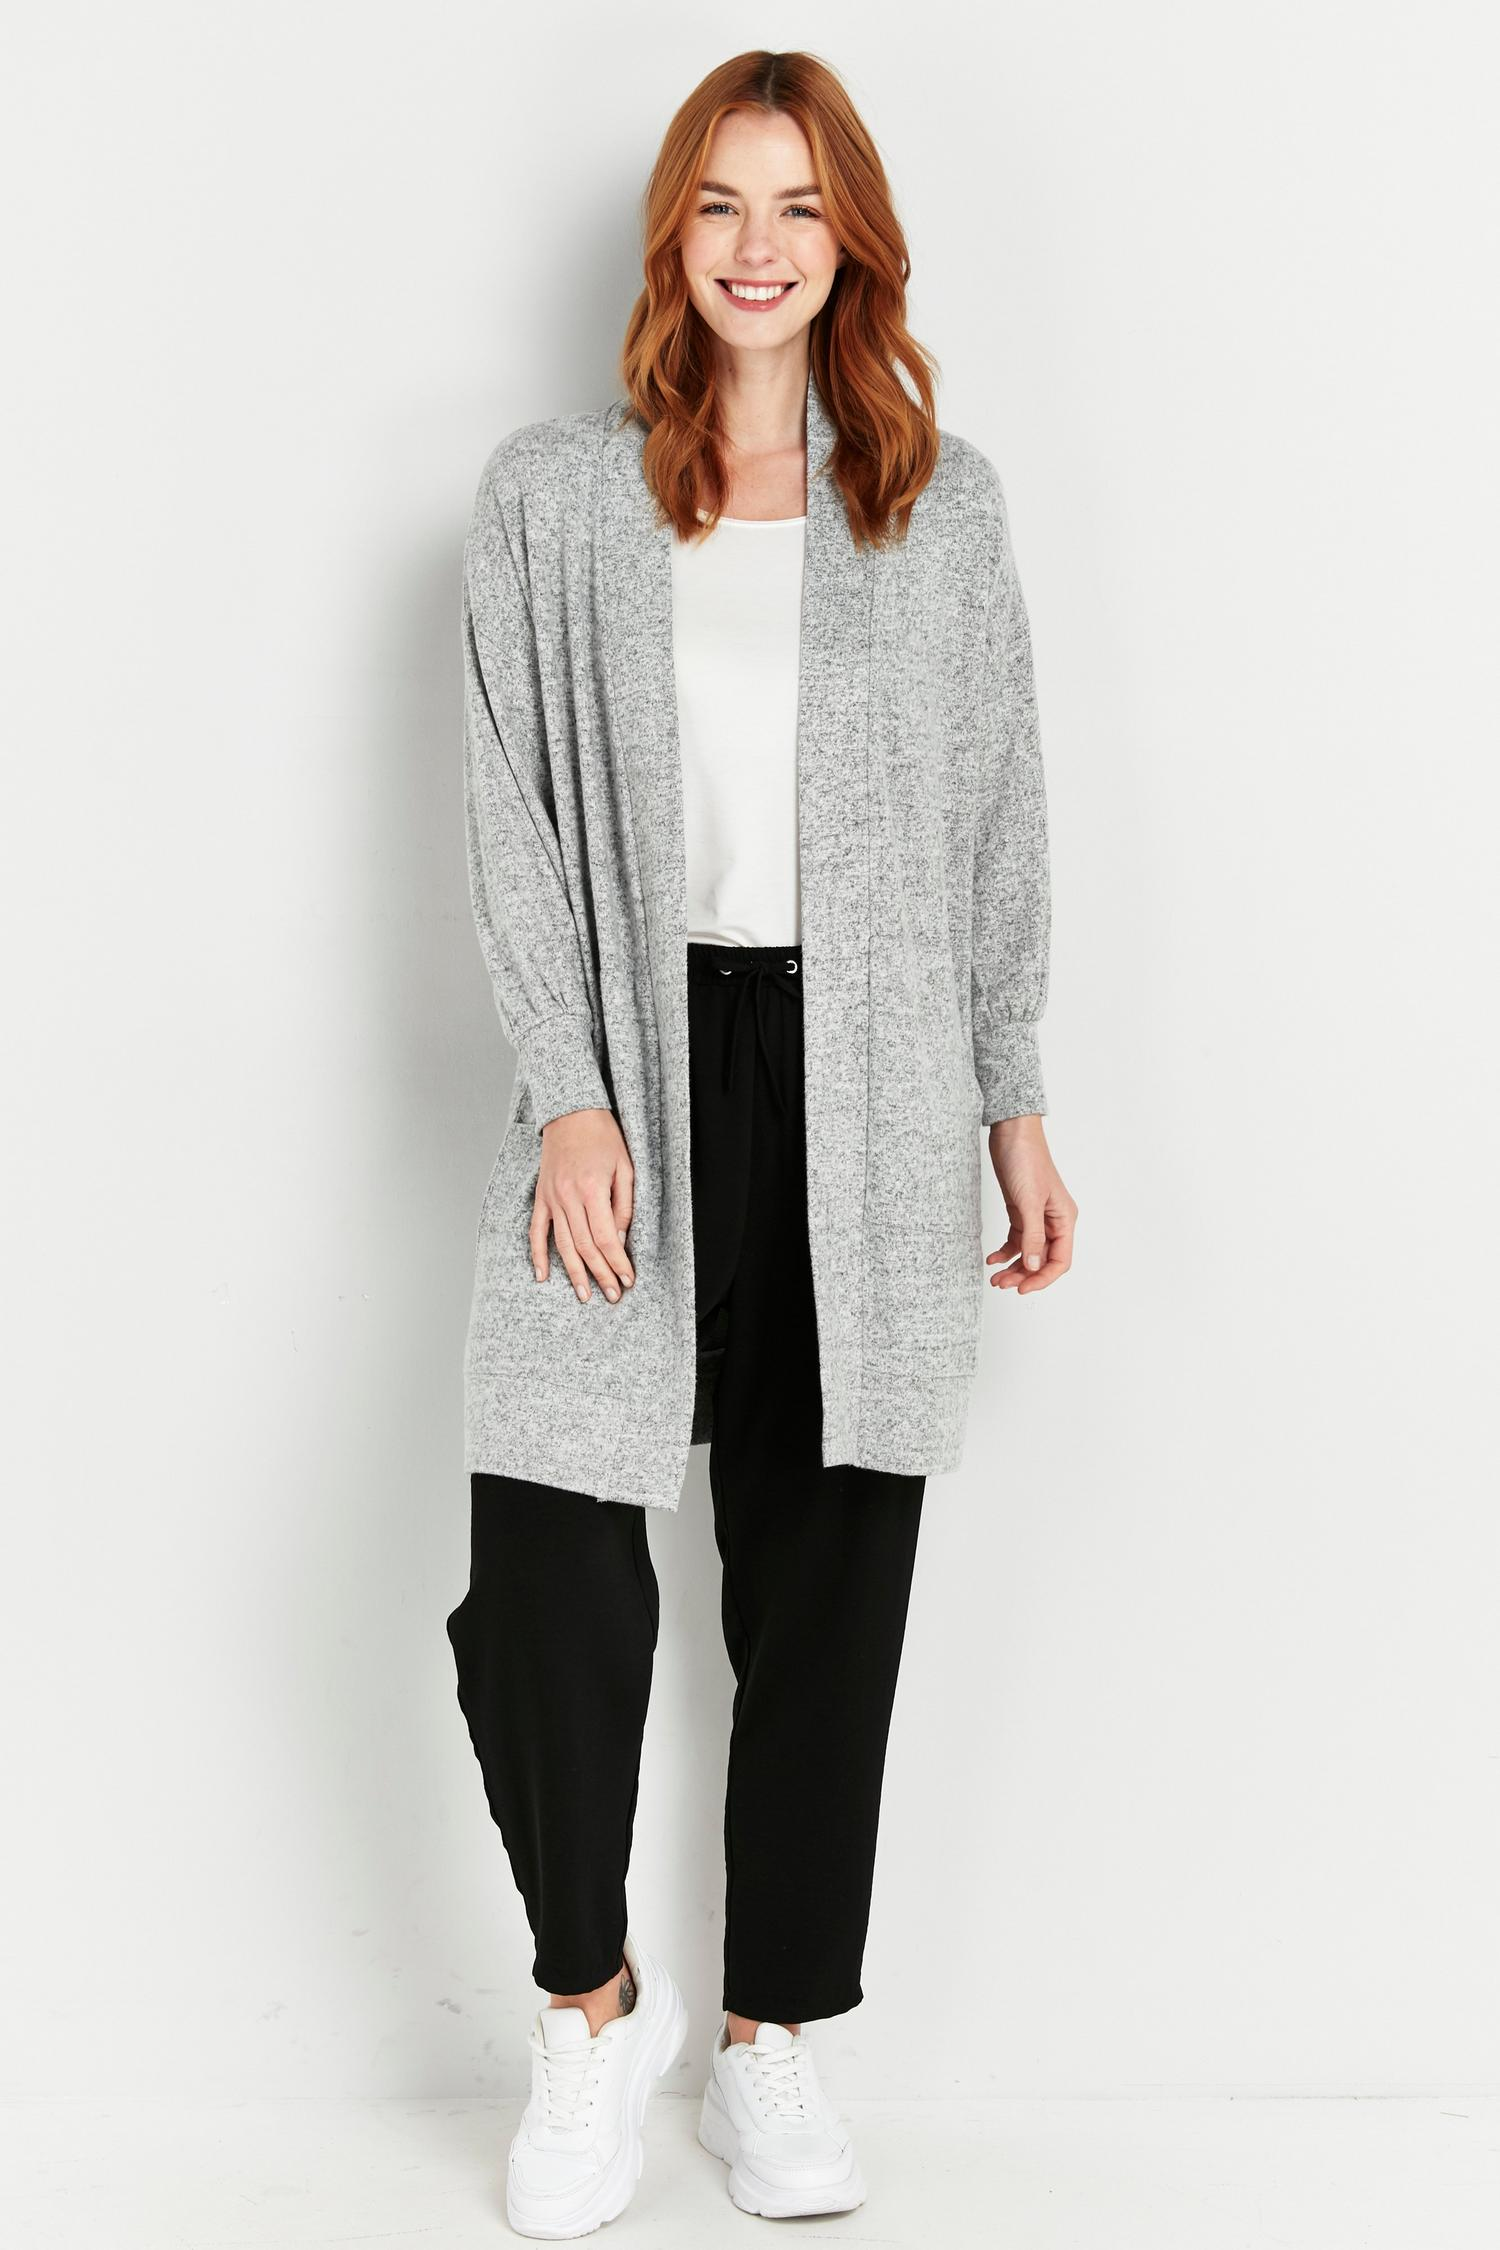 131 PETITE Grey Soft Relaxed Longline Cardigan image number 1